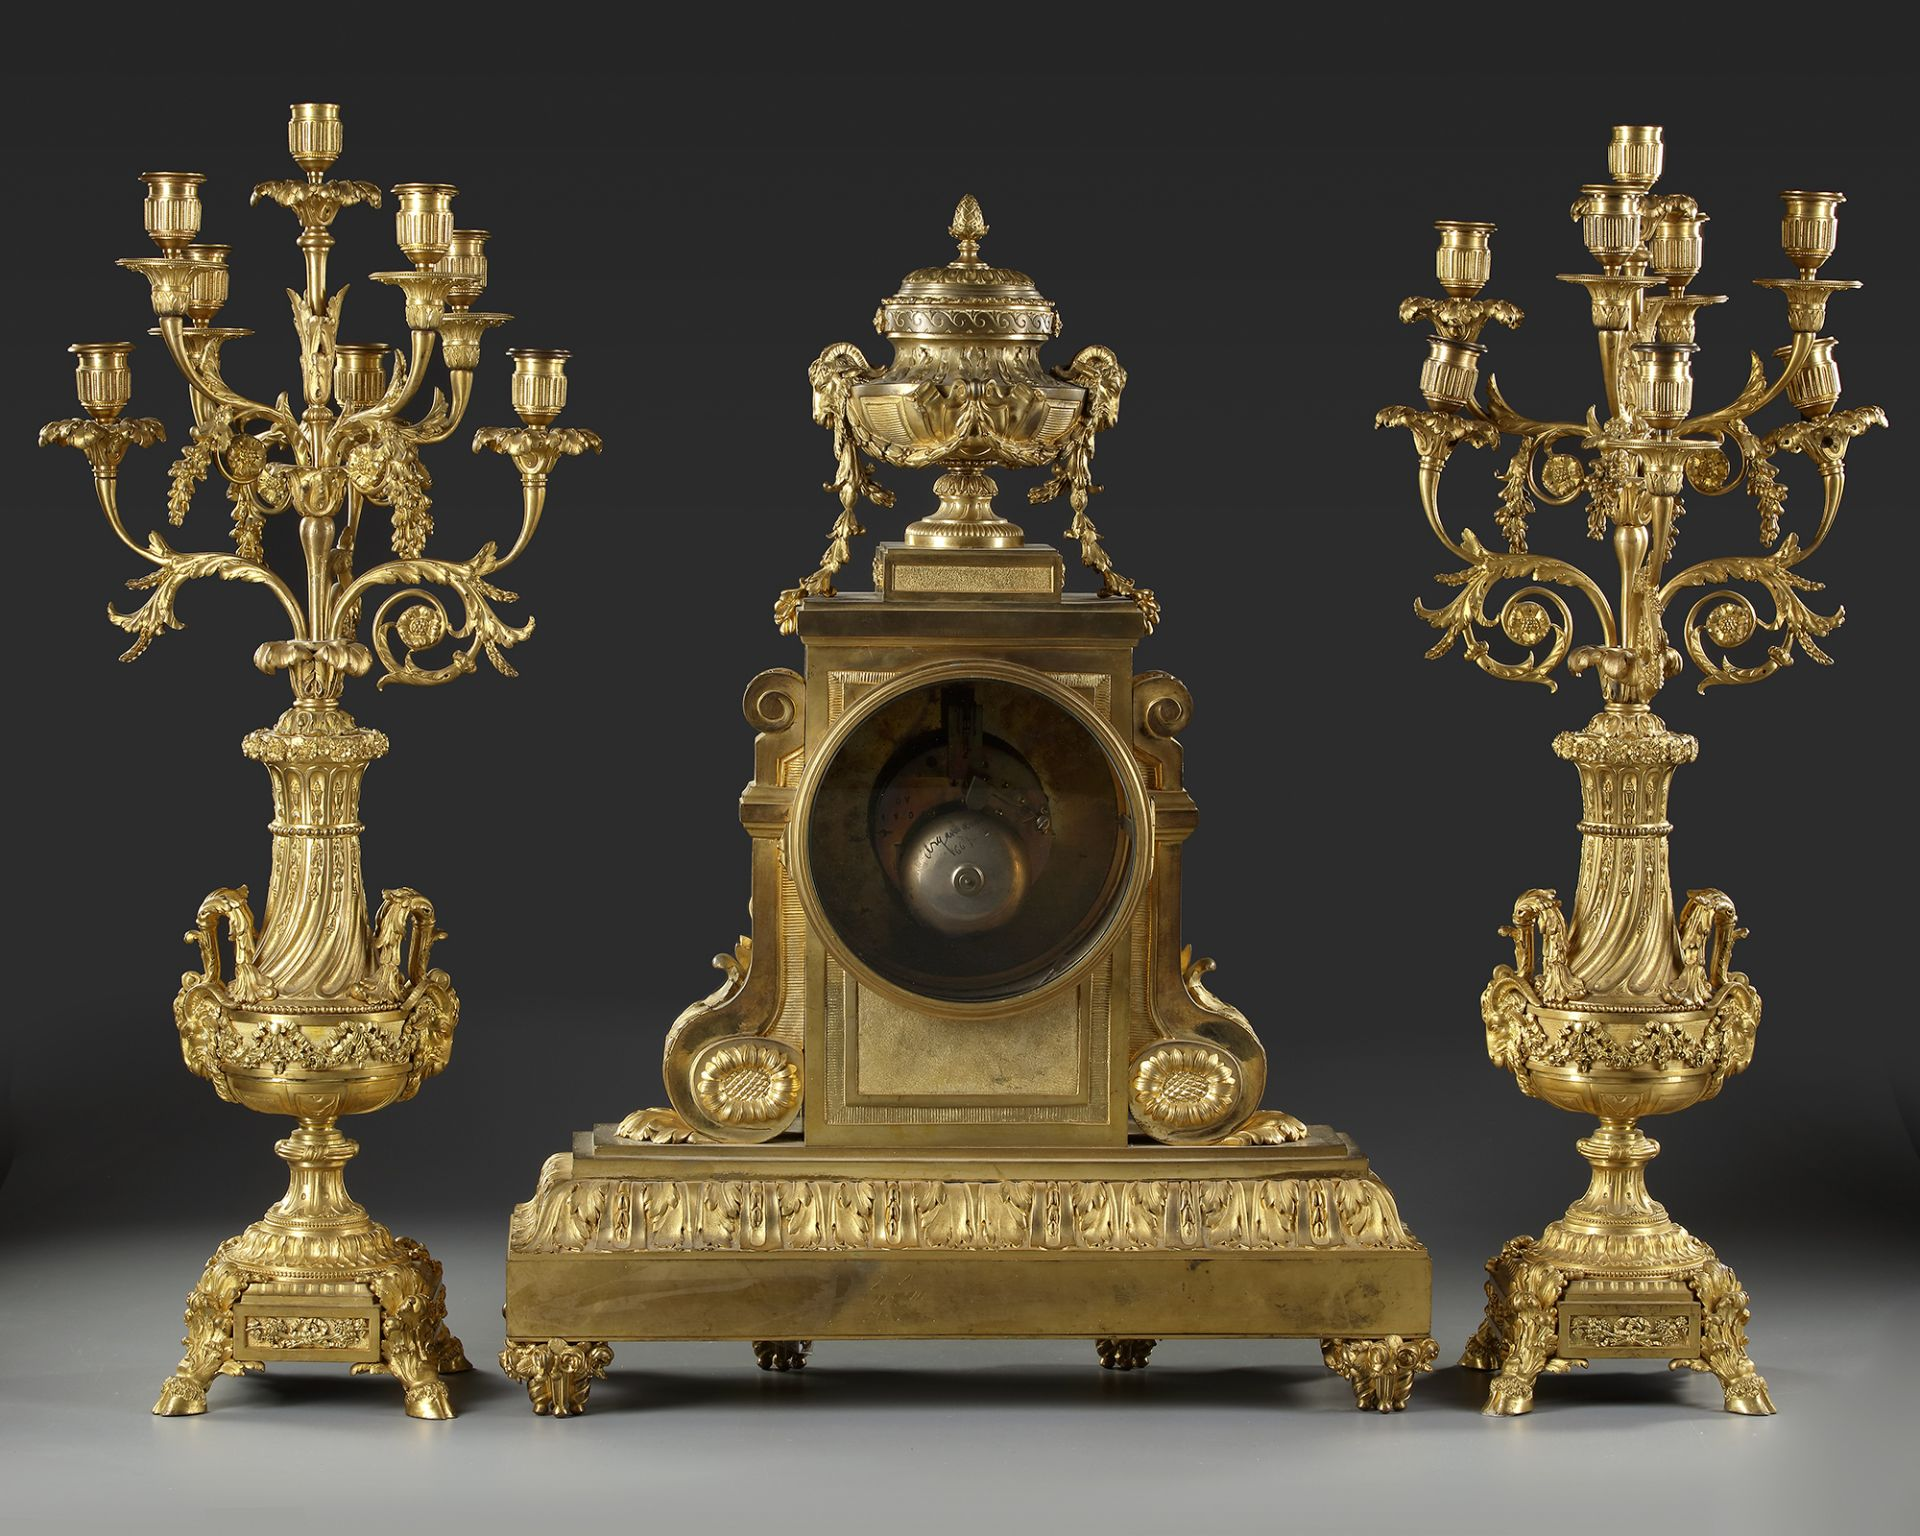 A FRENCH ORMOLU CLOCK SET, LATE 19TH CENTURY - Image 3 of 3